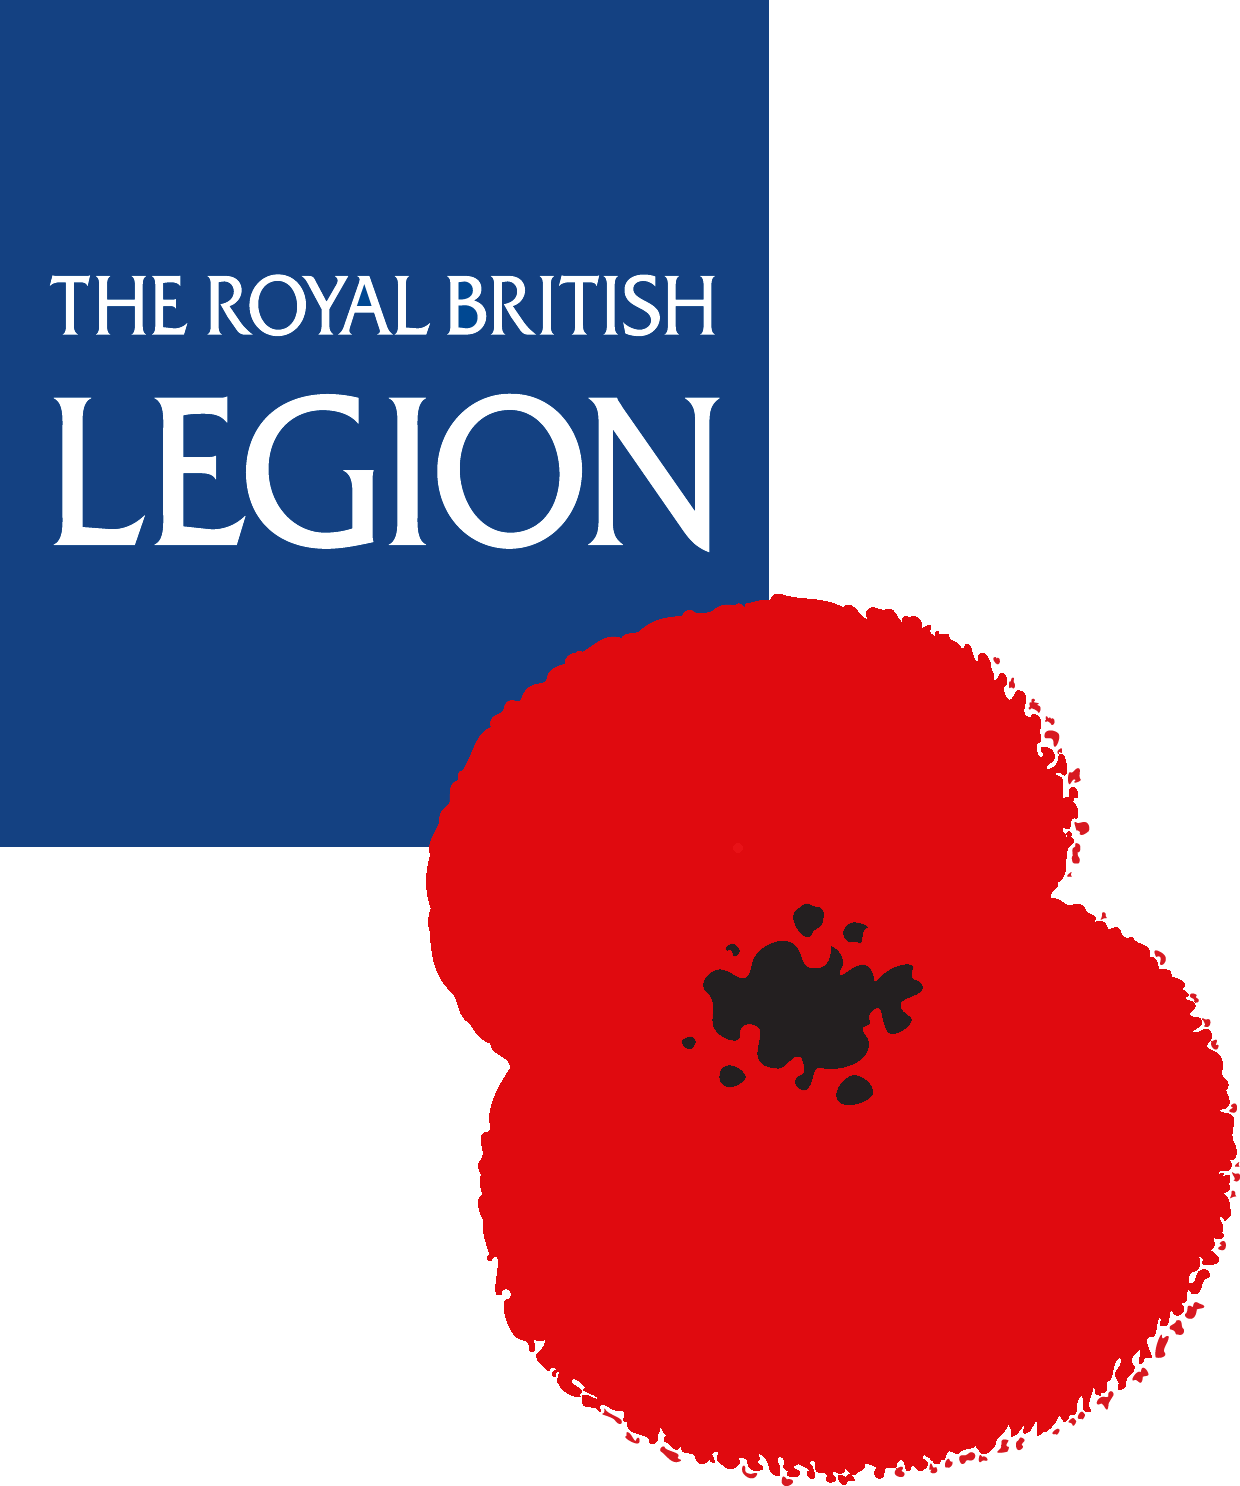 Poppy clipart legion. The royal british remembrance